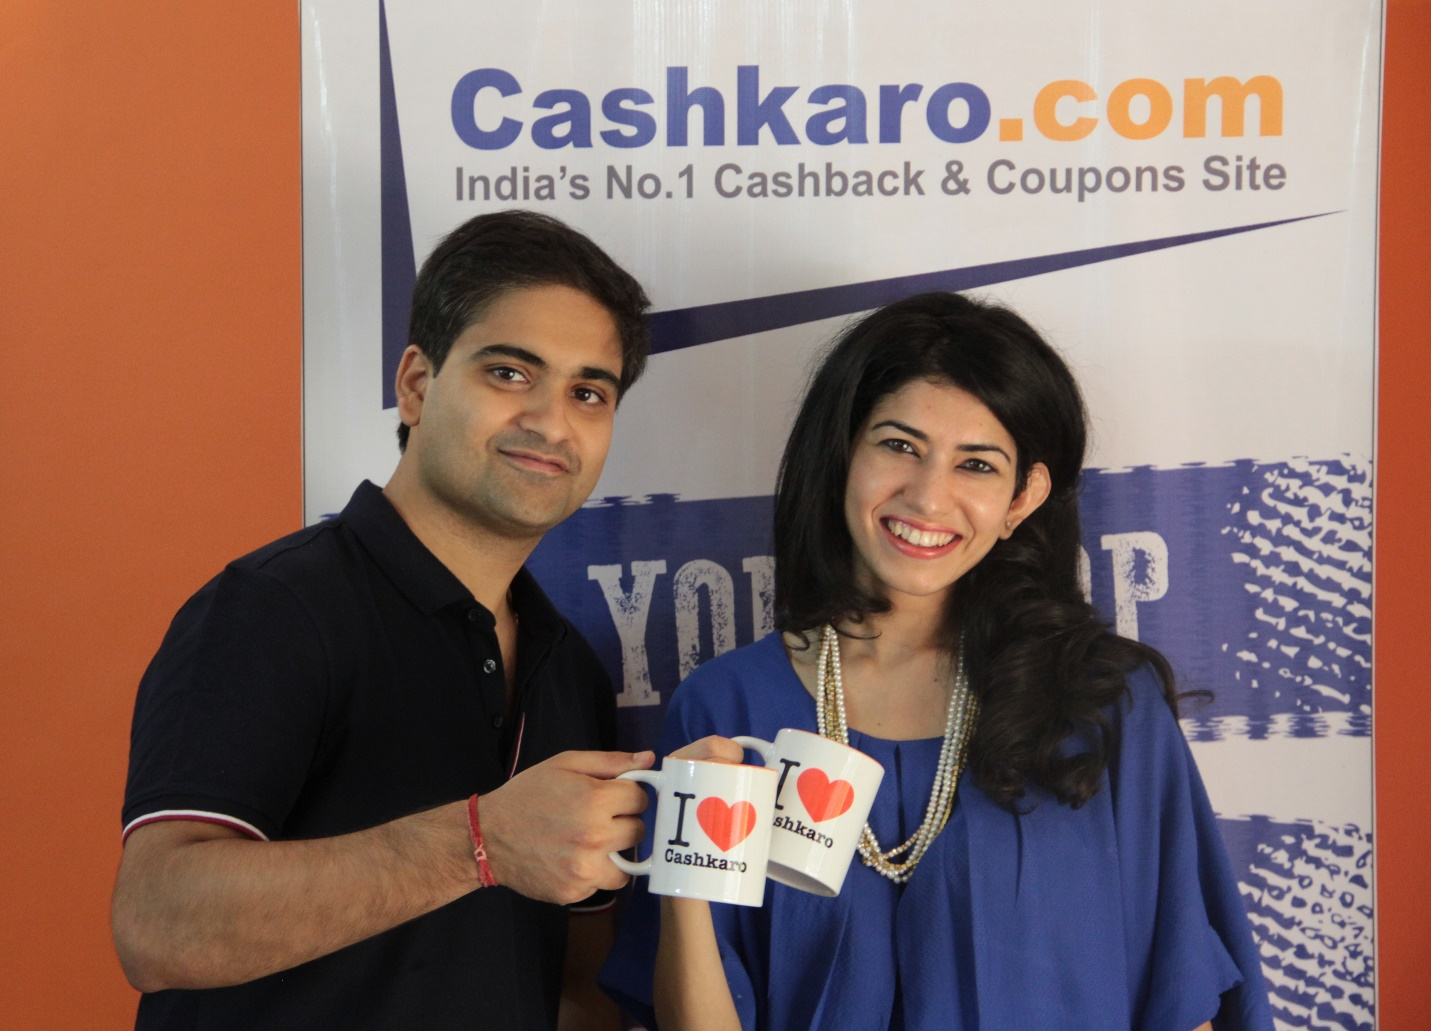 CashKaro founders Rohan and Swati Bhargava